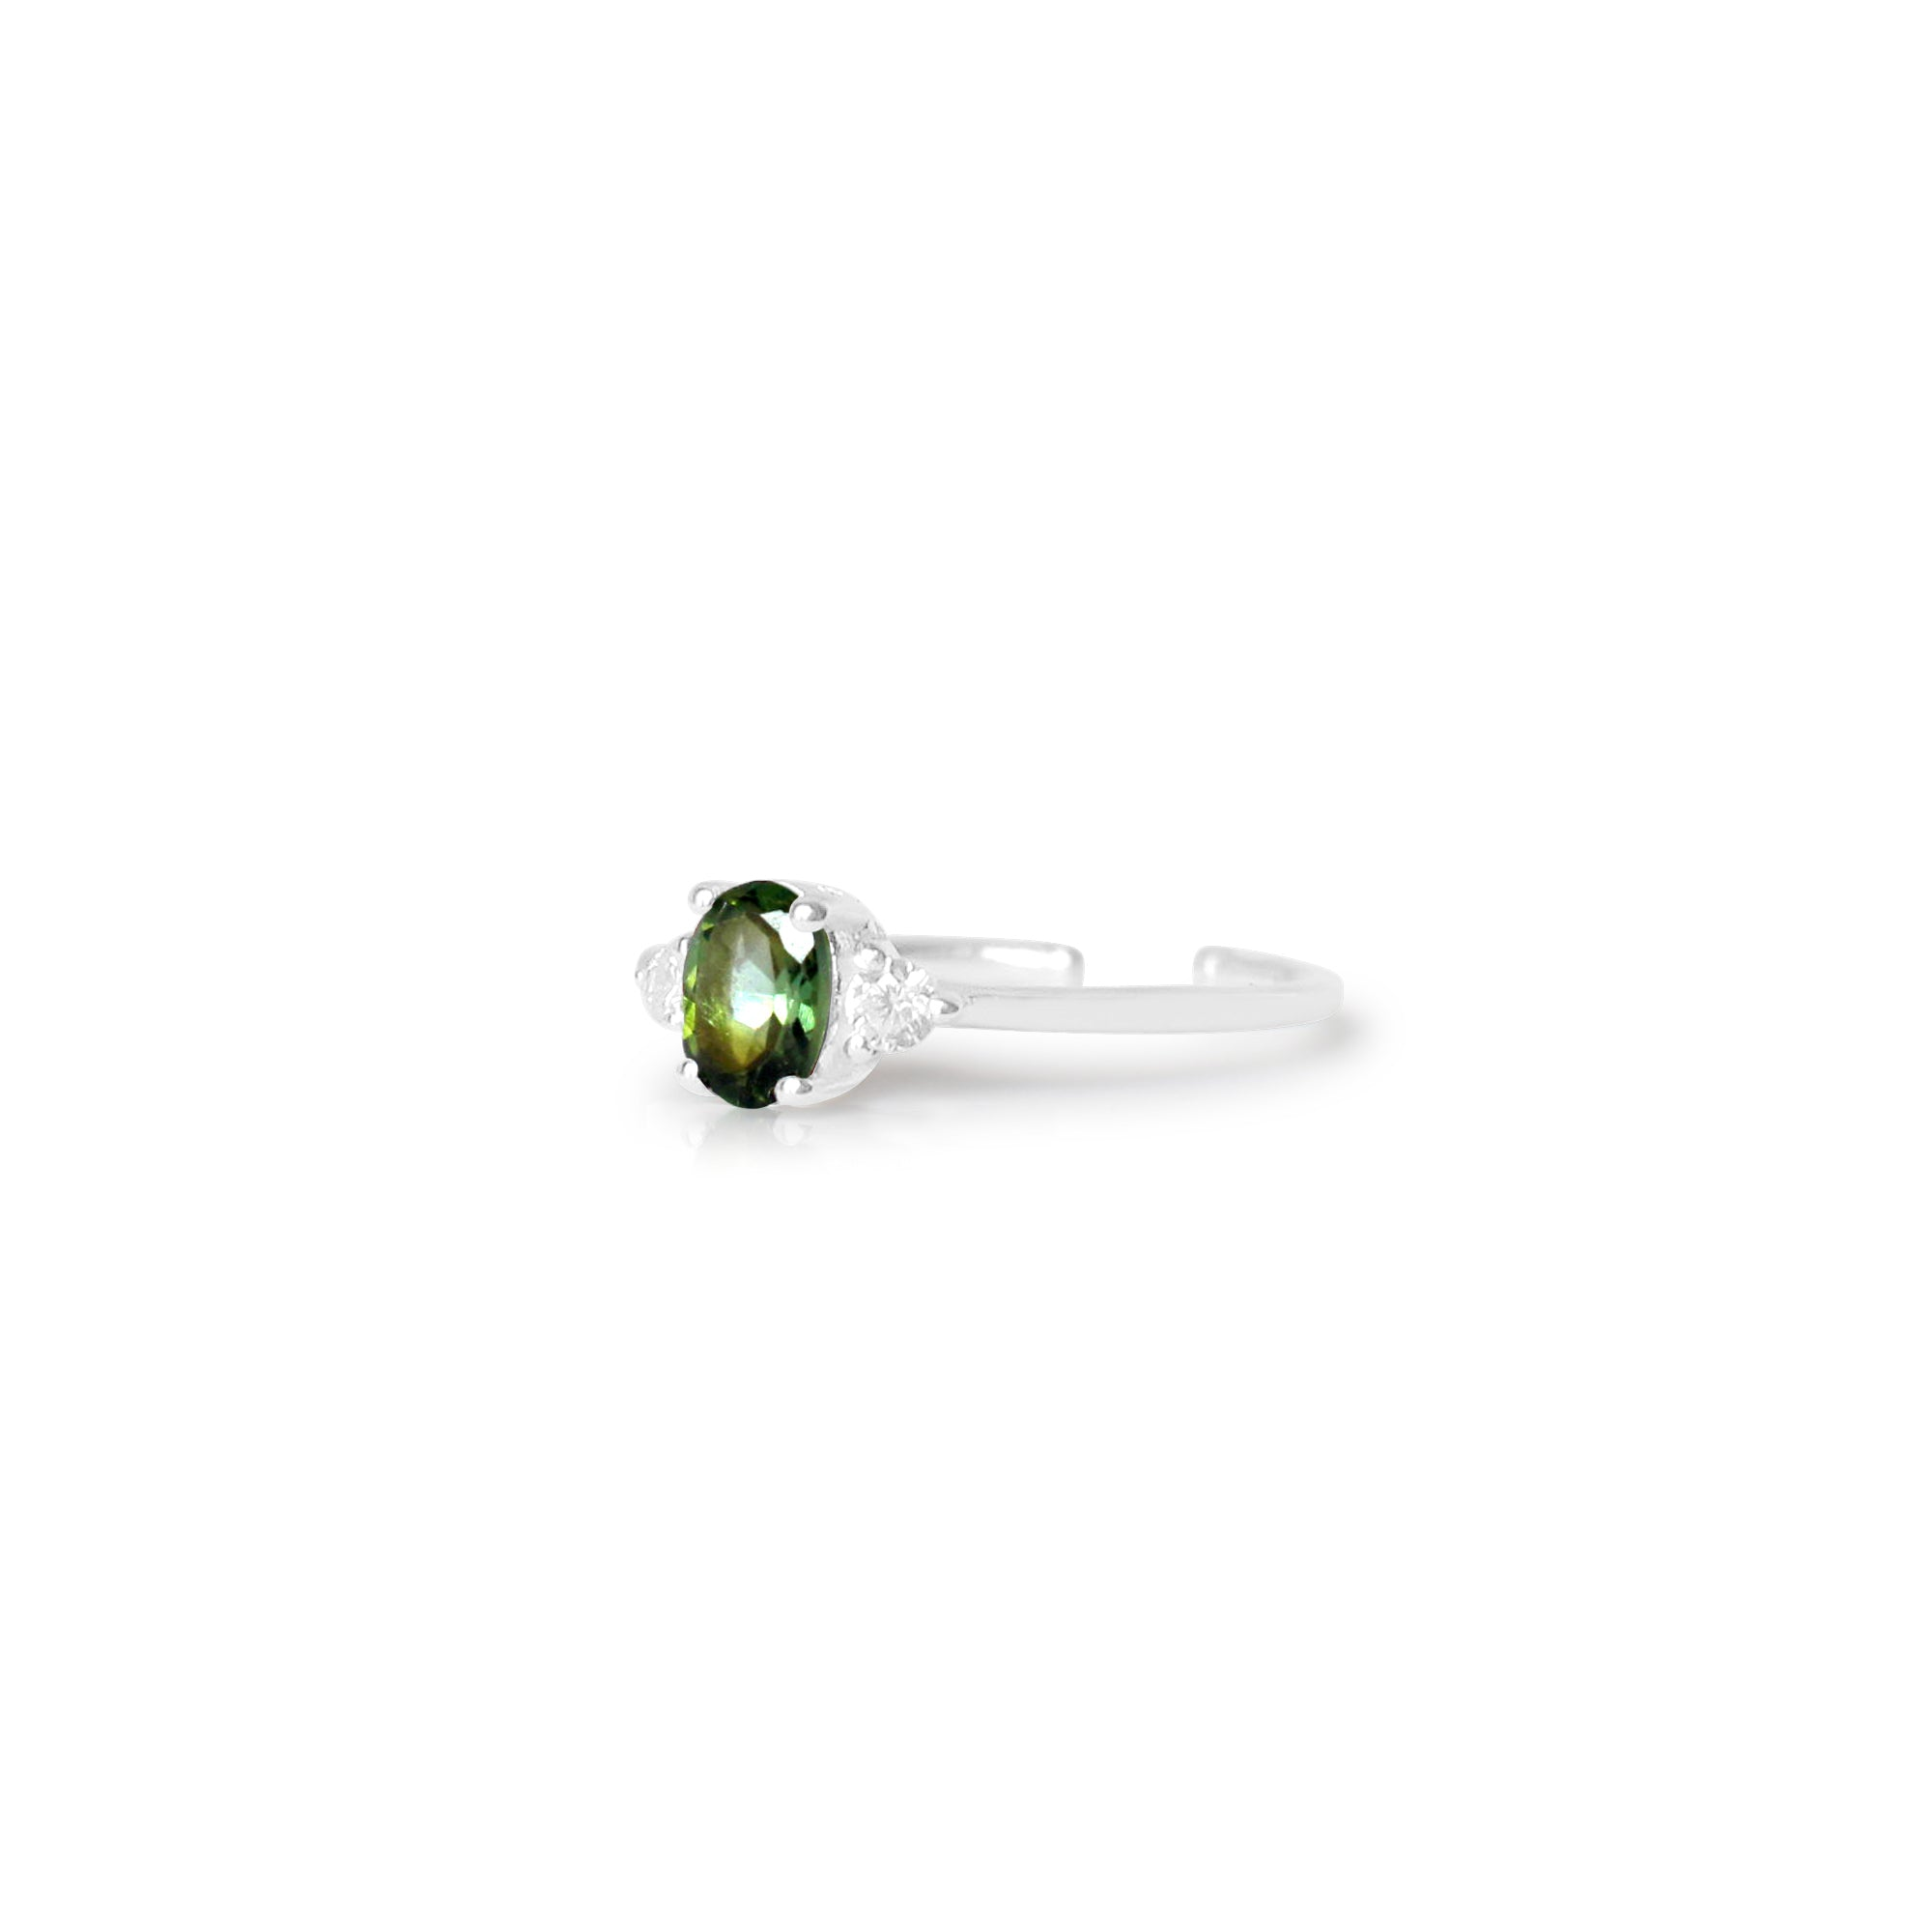 925 Silver Luxe Series Ring - Yura (Green Tourmaline) - Tessellate.Co